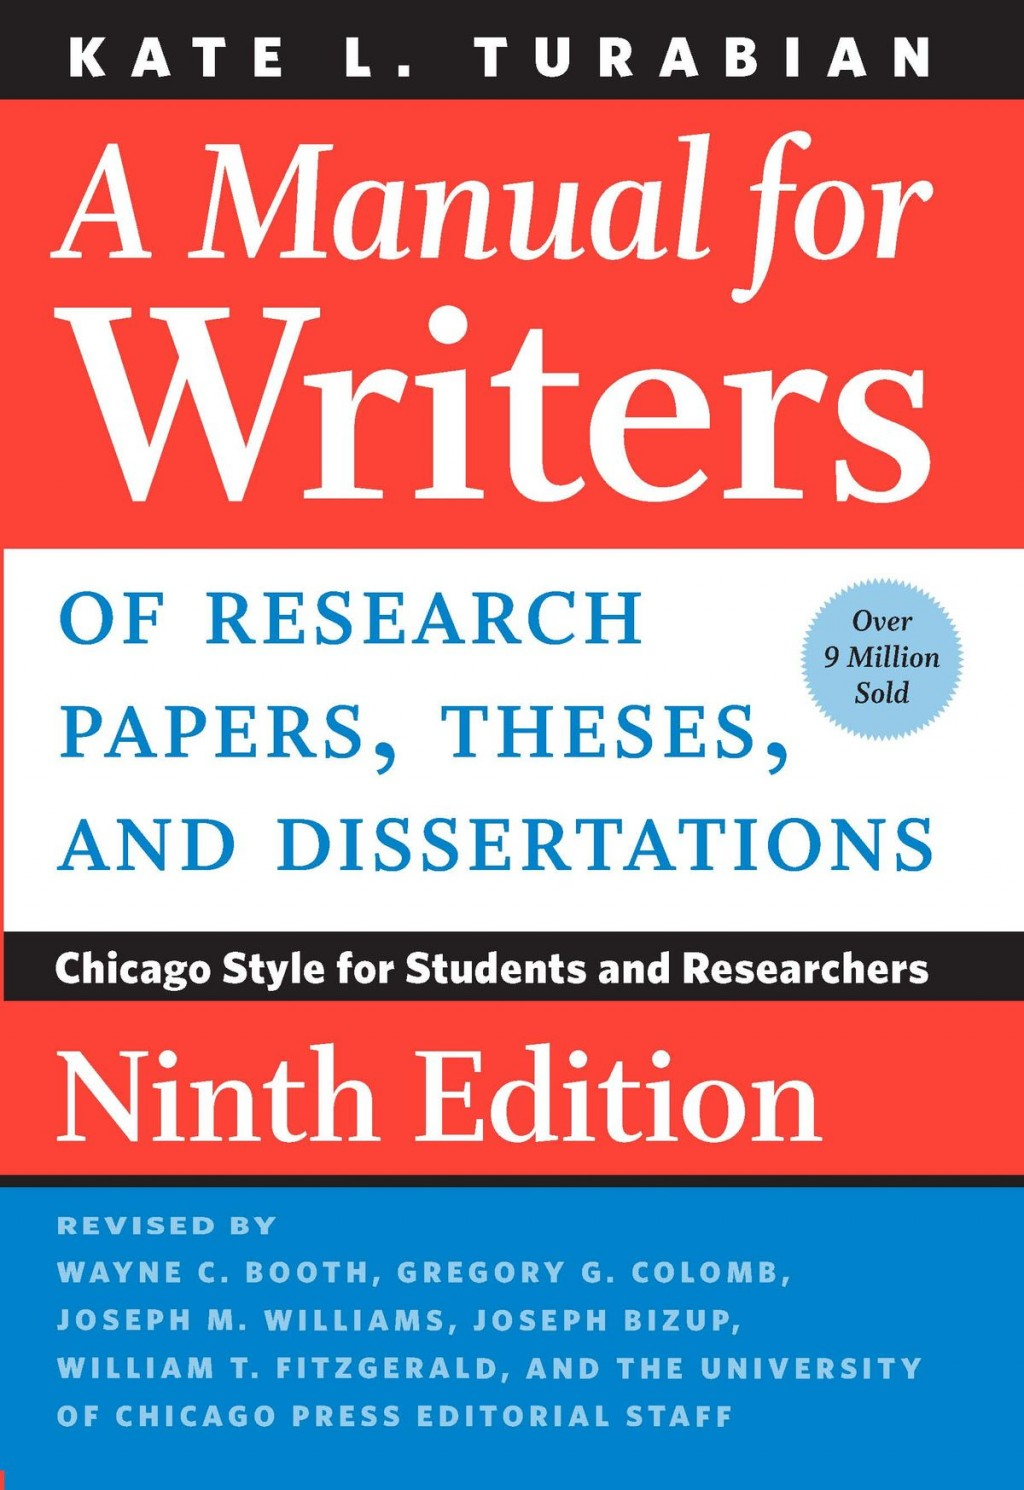 004 Manual For Writers Of Research Papers Theses And Dissertations Pdf Download Paper Ninth Impressive A Large